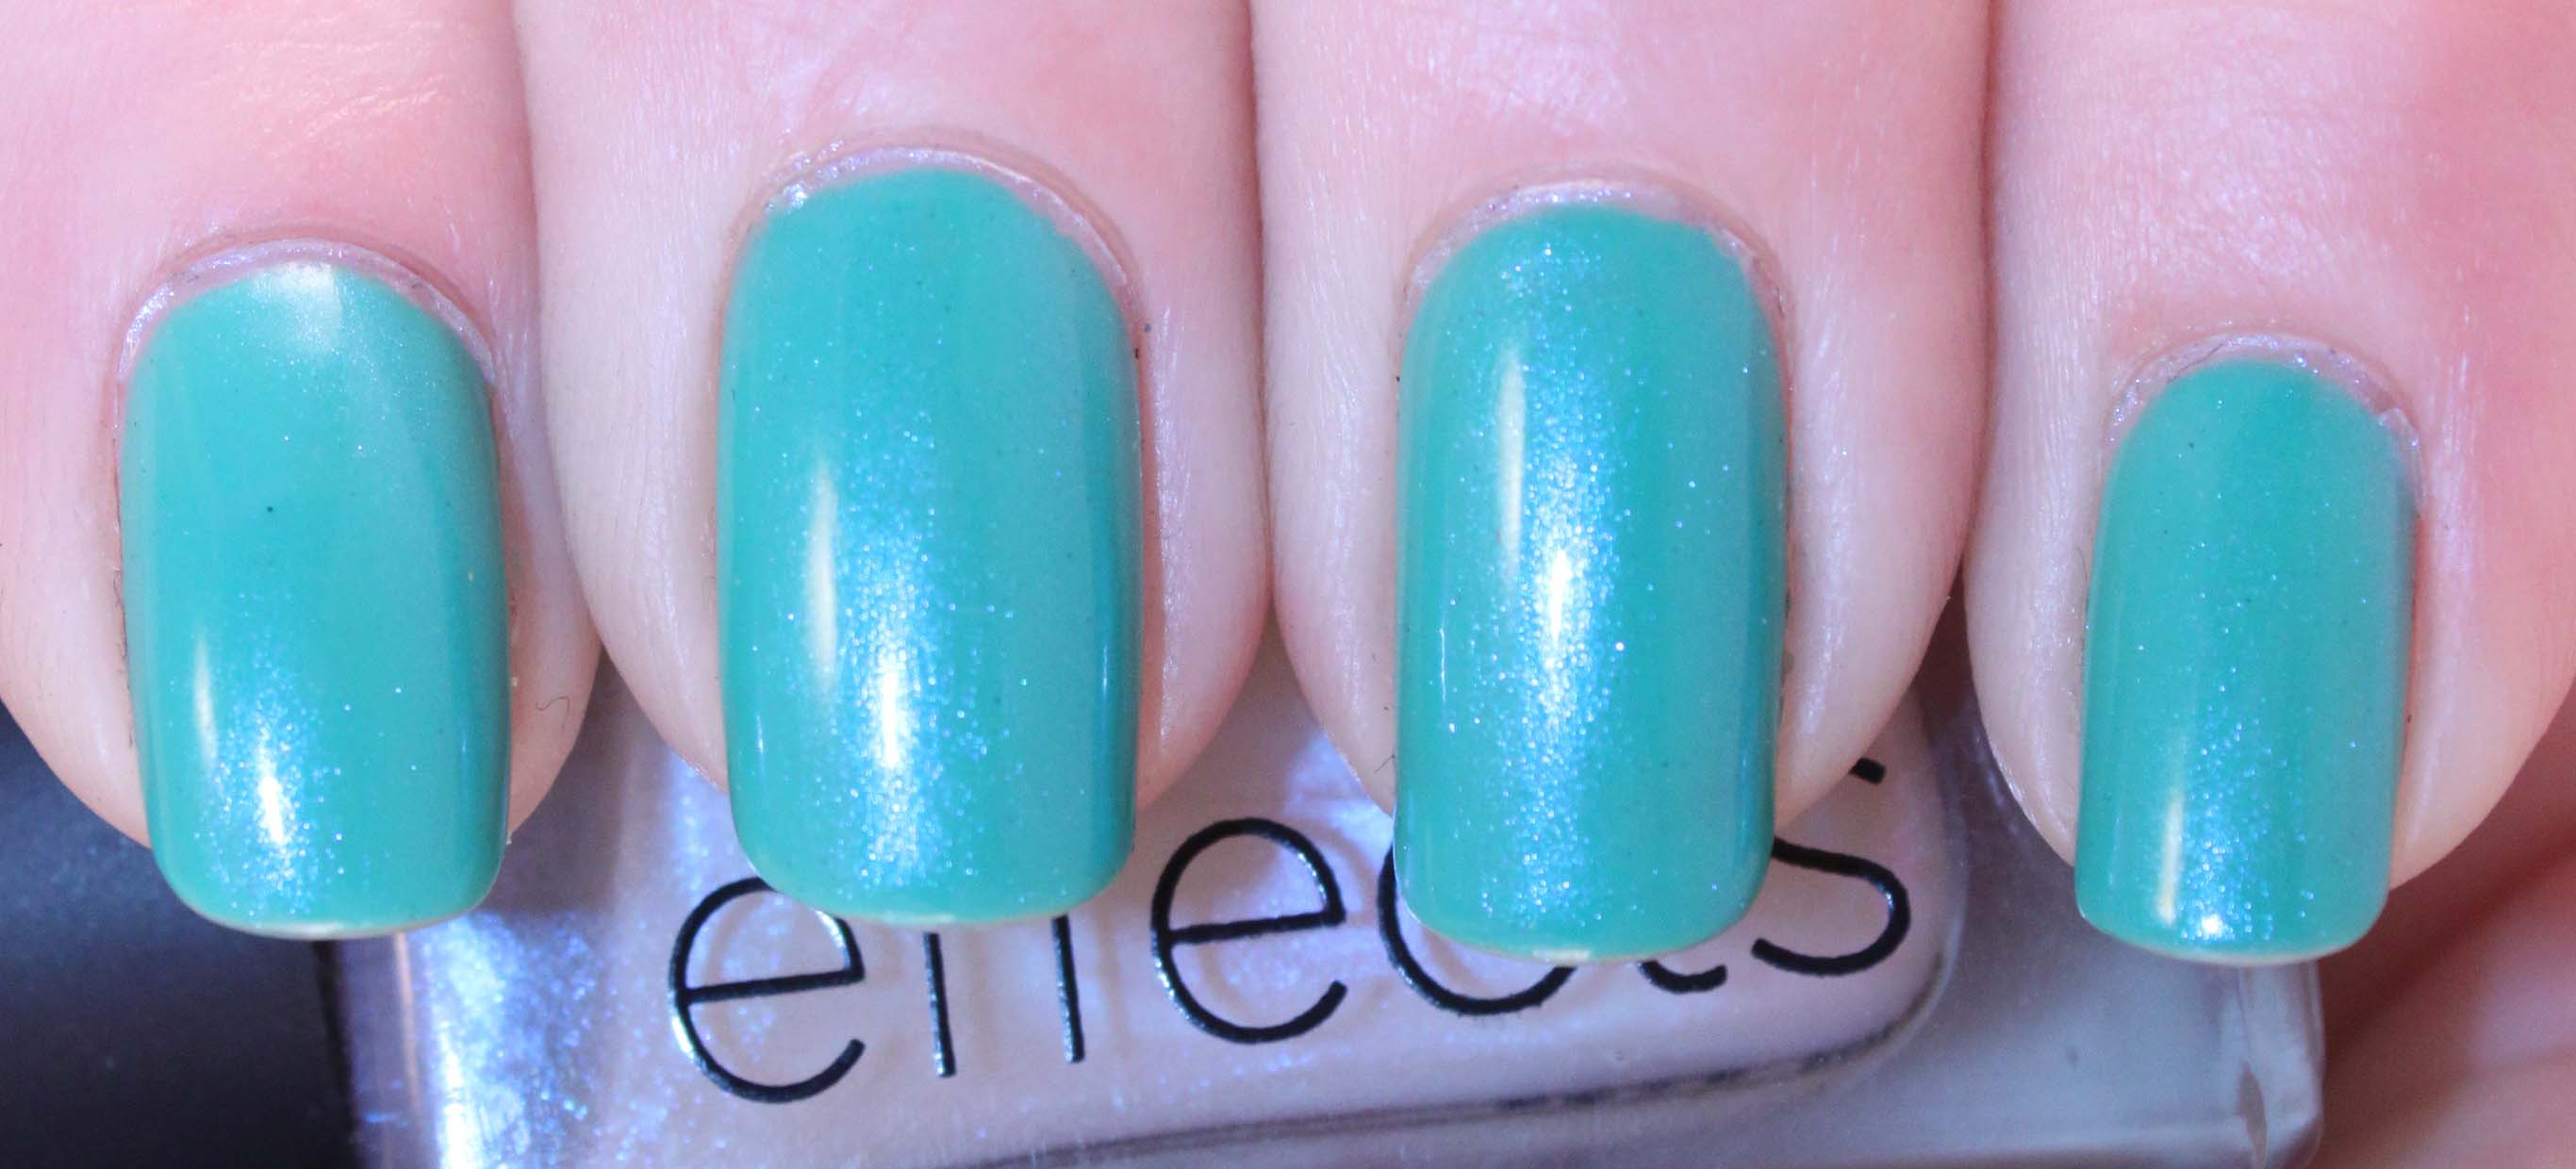 L.A. Girl Disco Brites - Turntable w CND Ice Blue Shimmer